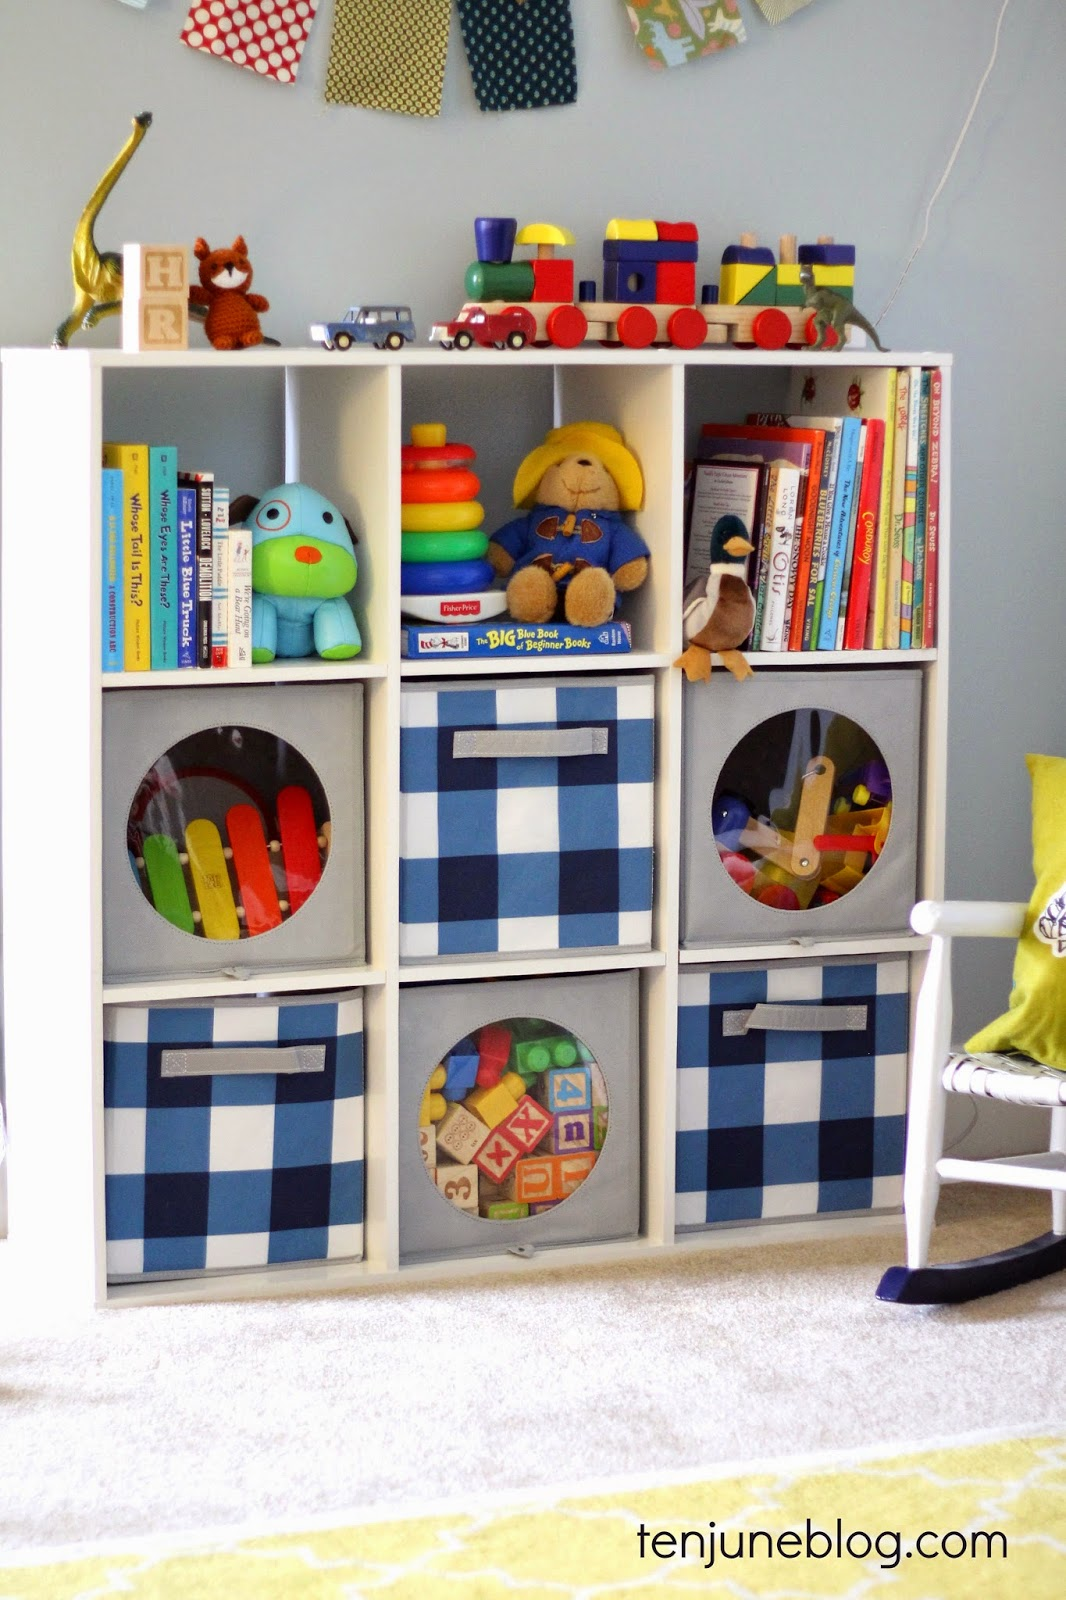 Toys Storage Ideas For Boys : Ten june kids room play toy storage ideas